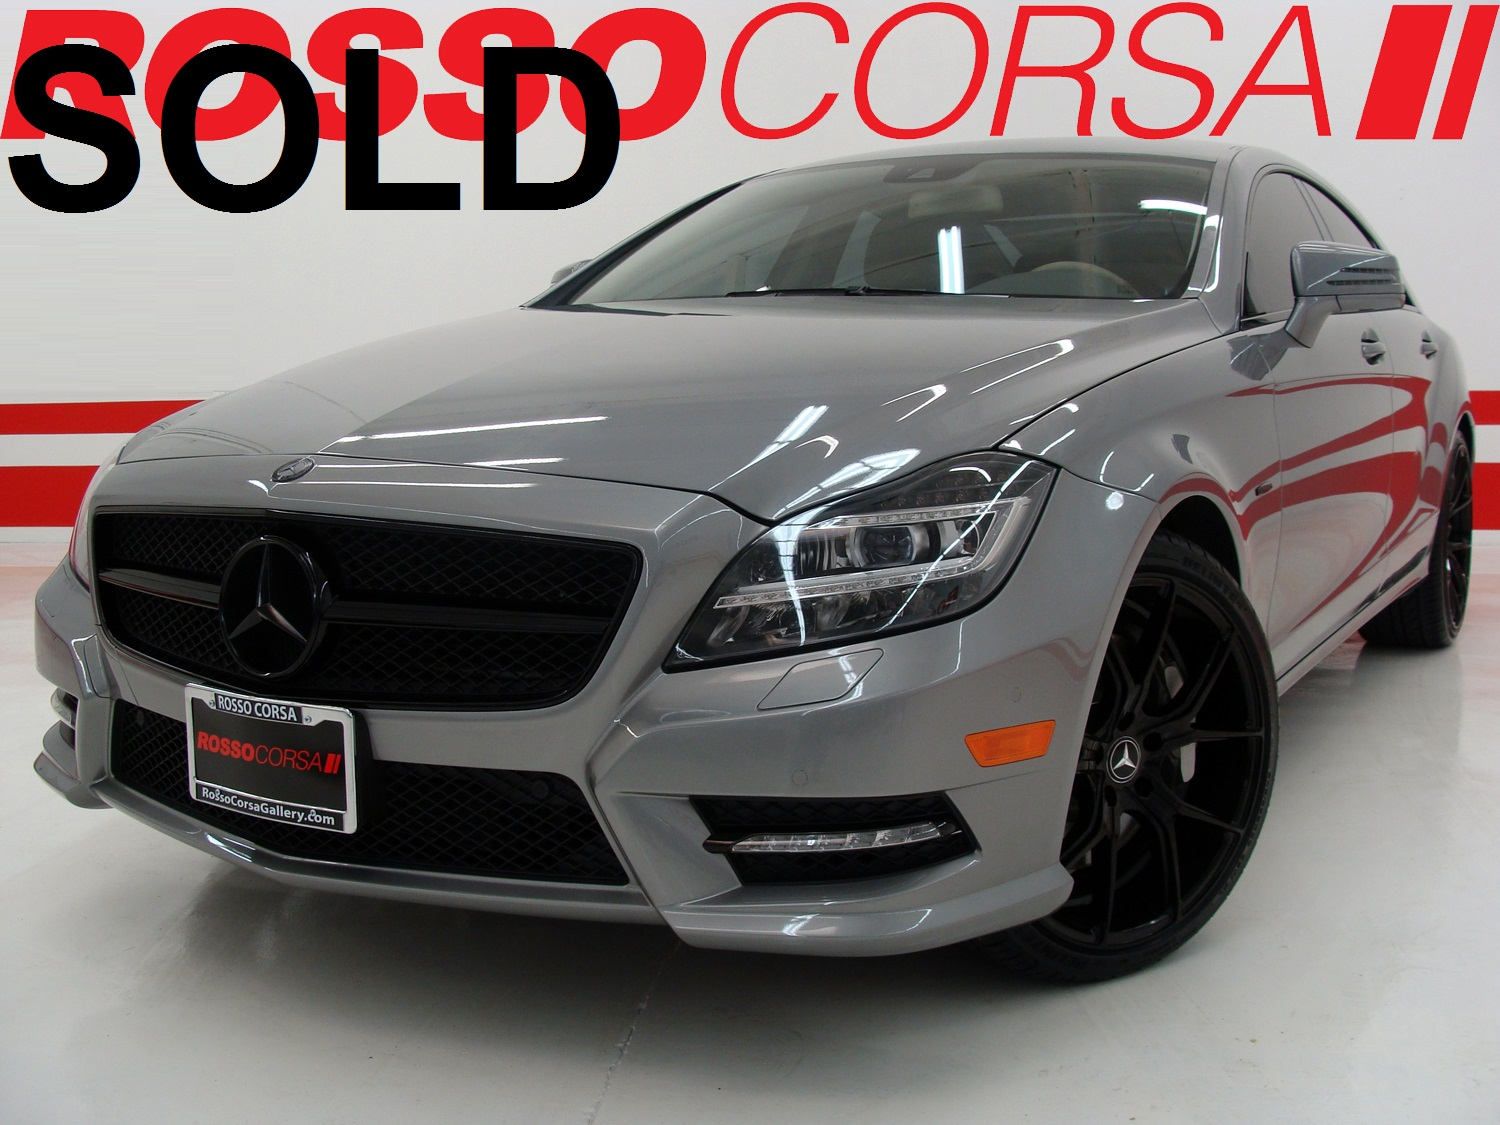 2012 Mercedes-Benz CLS550 CUSTOM ($81K MSRP)